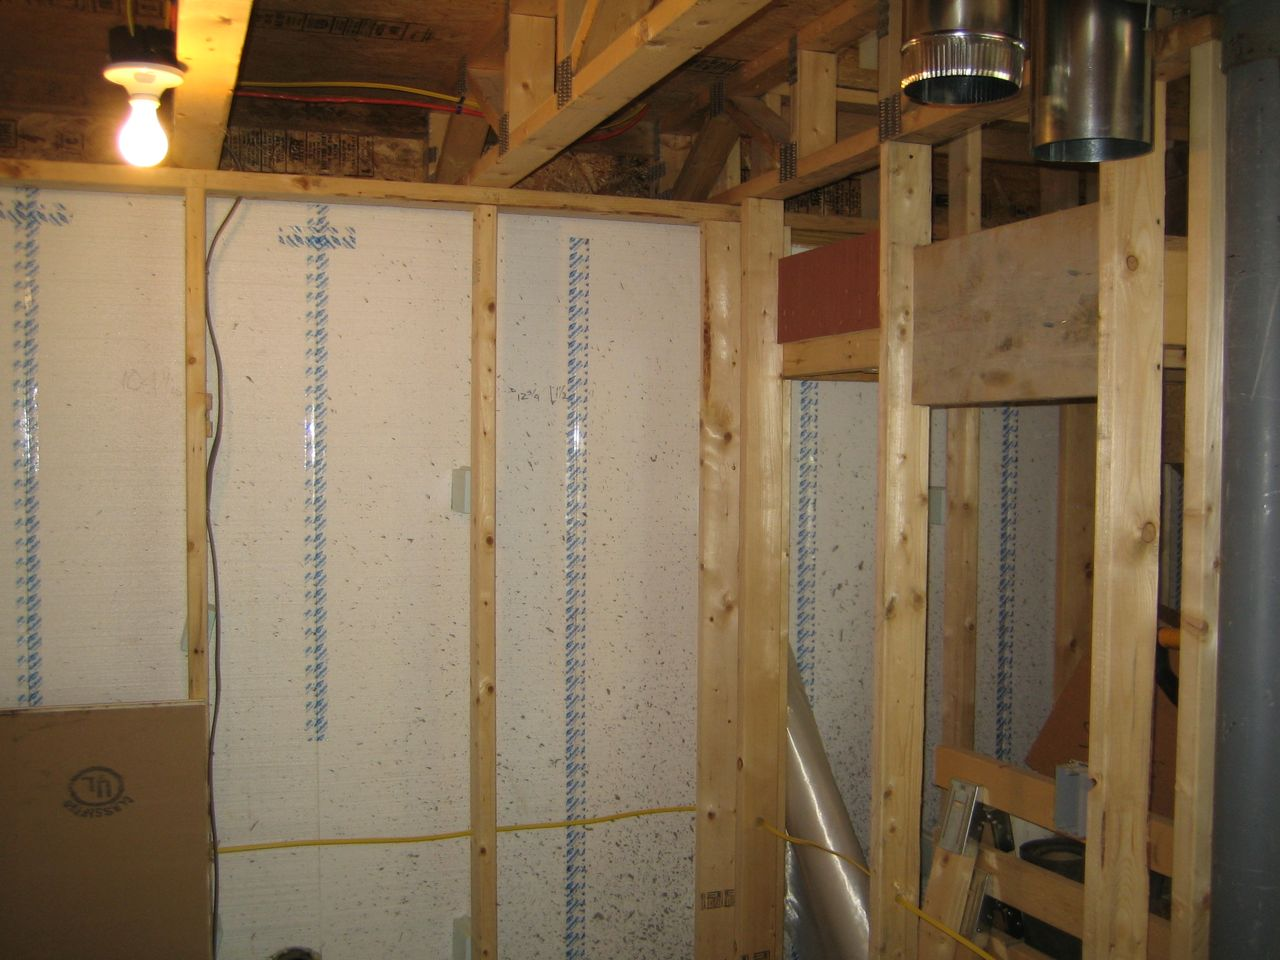 ventilator location in basement with house return supply in top right